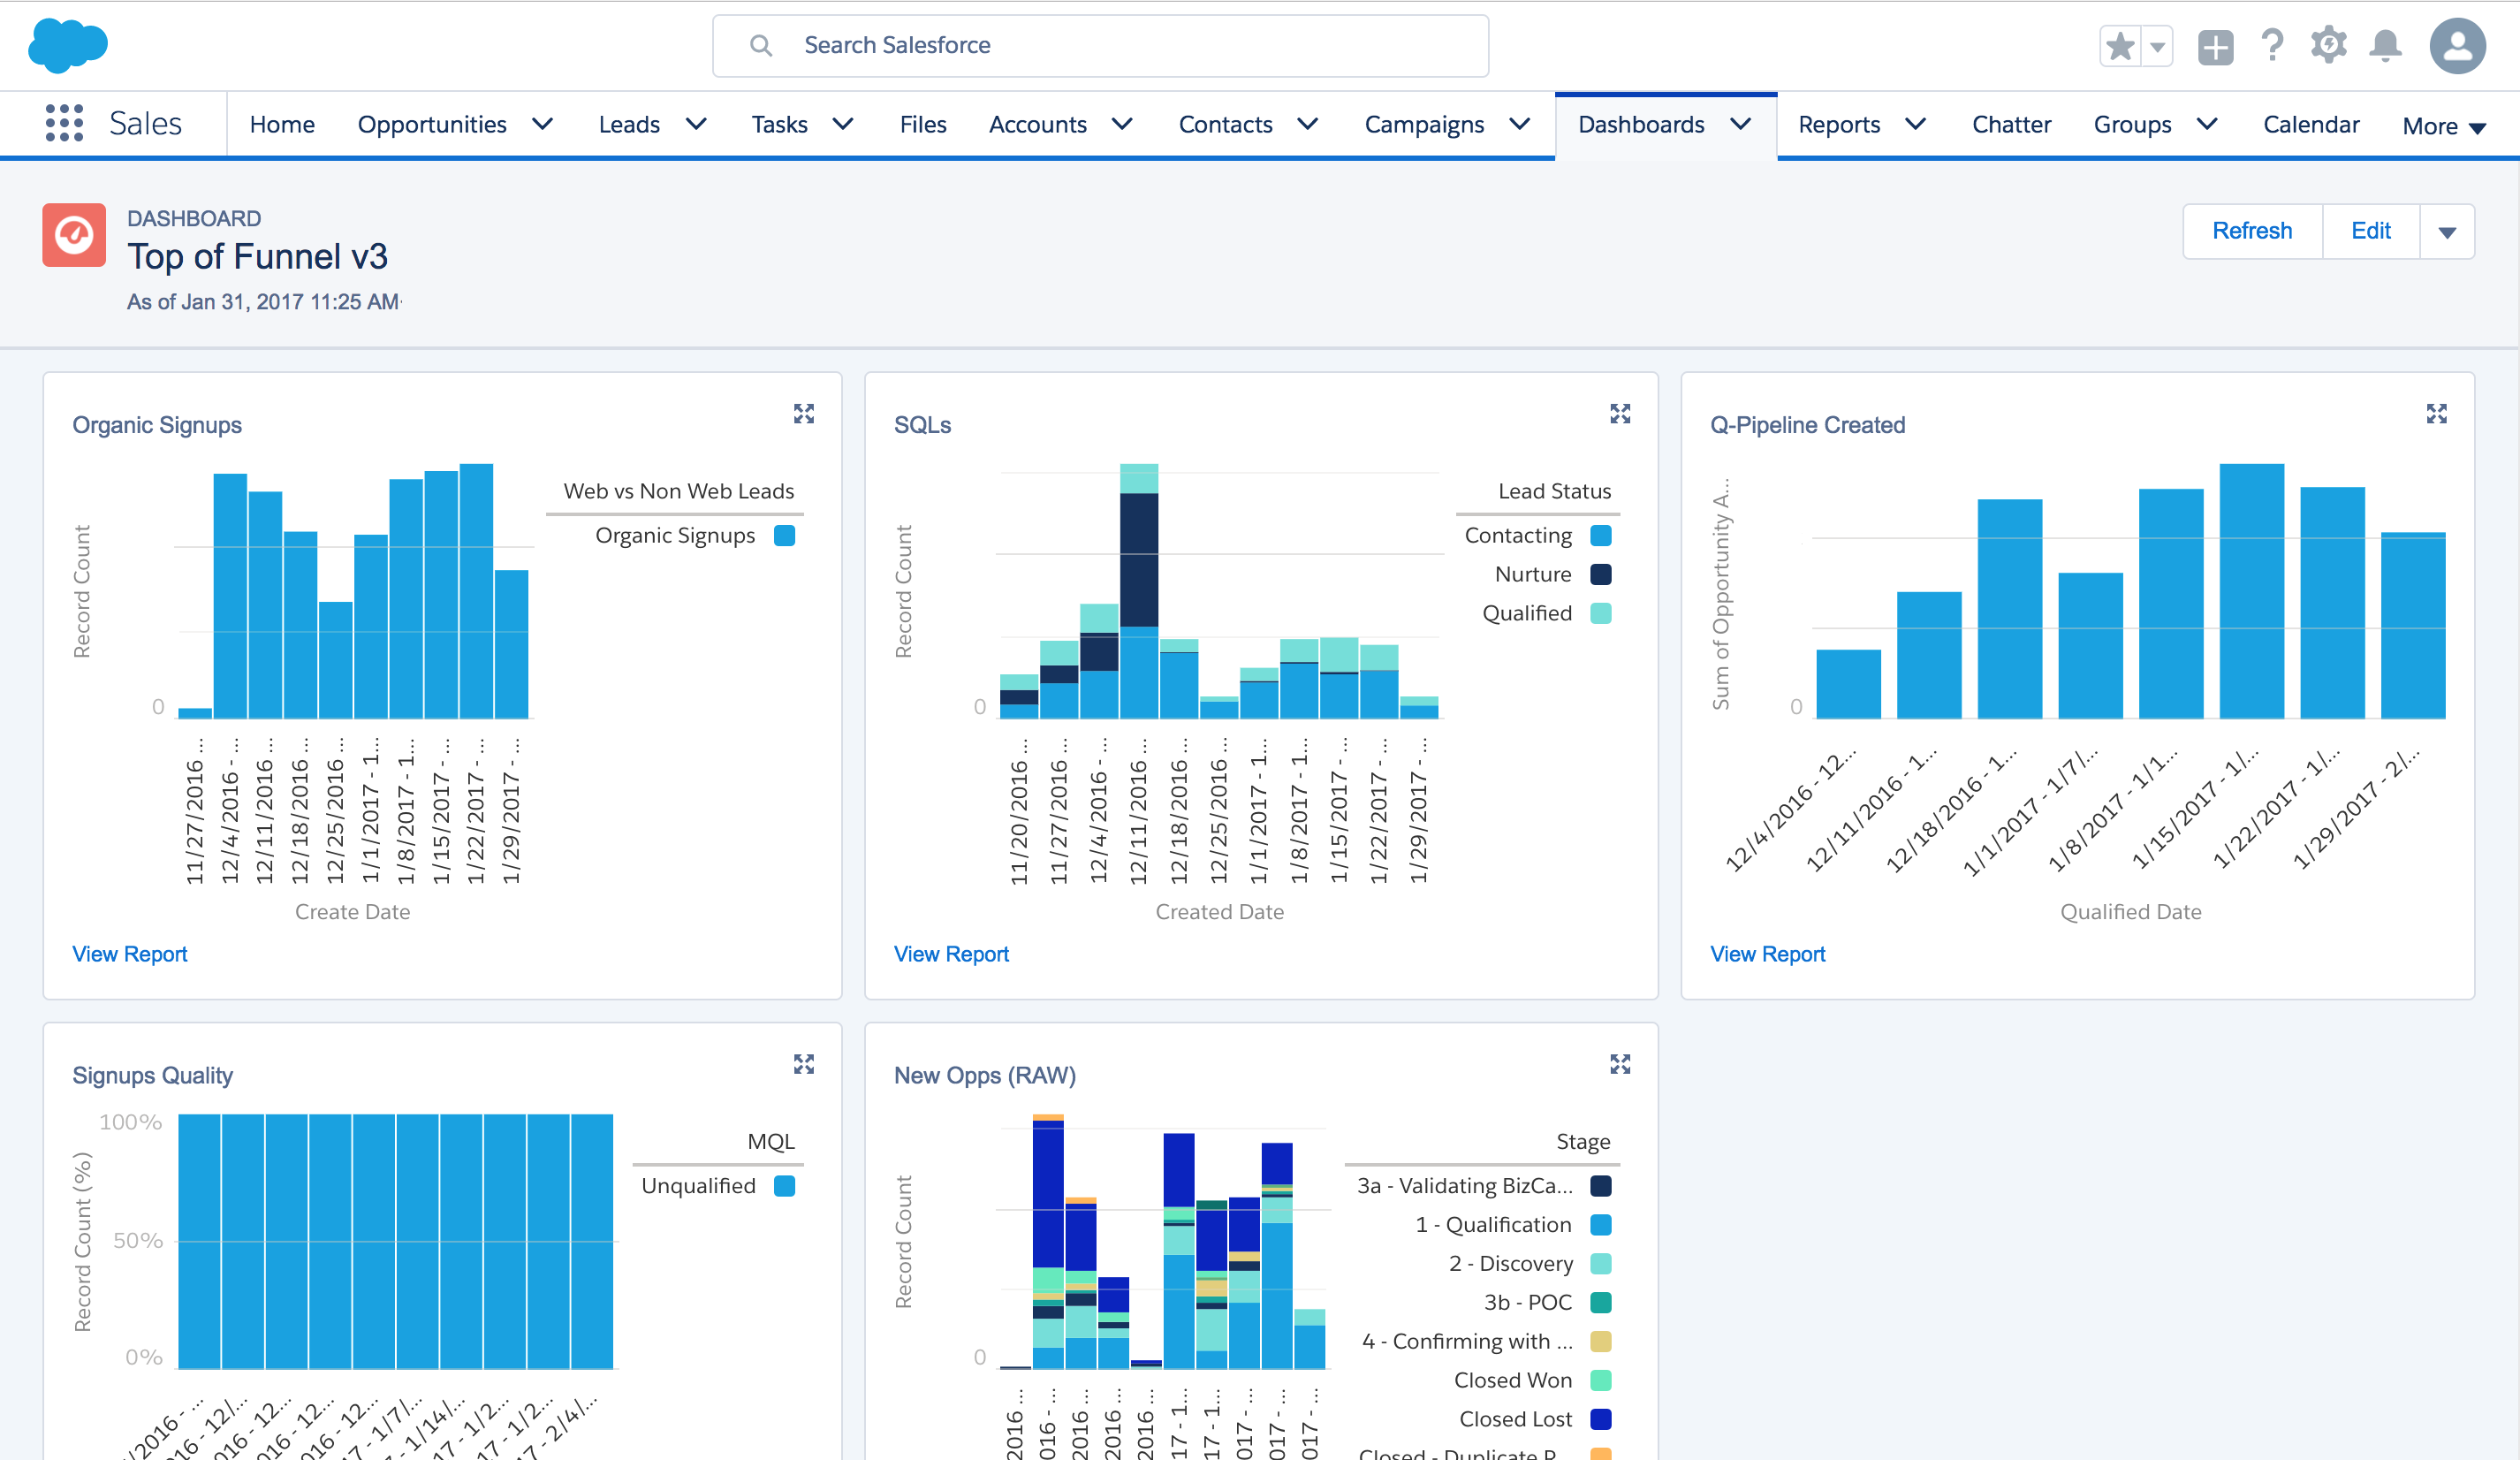 Process sophisticated visualizations of all your data within Salesforce for custom dashboards.